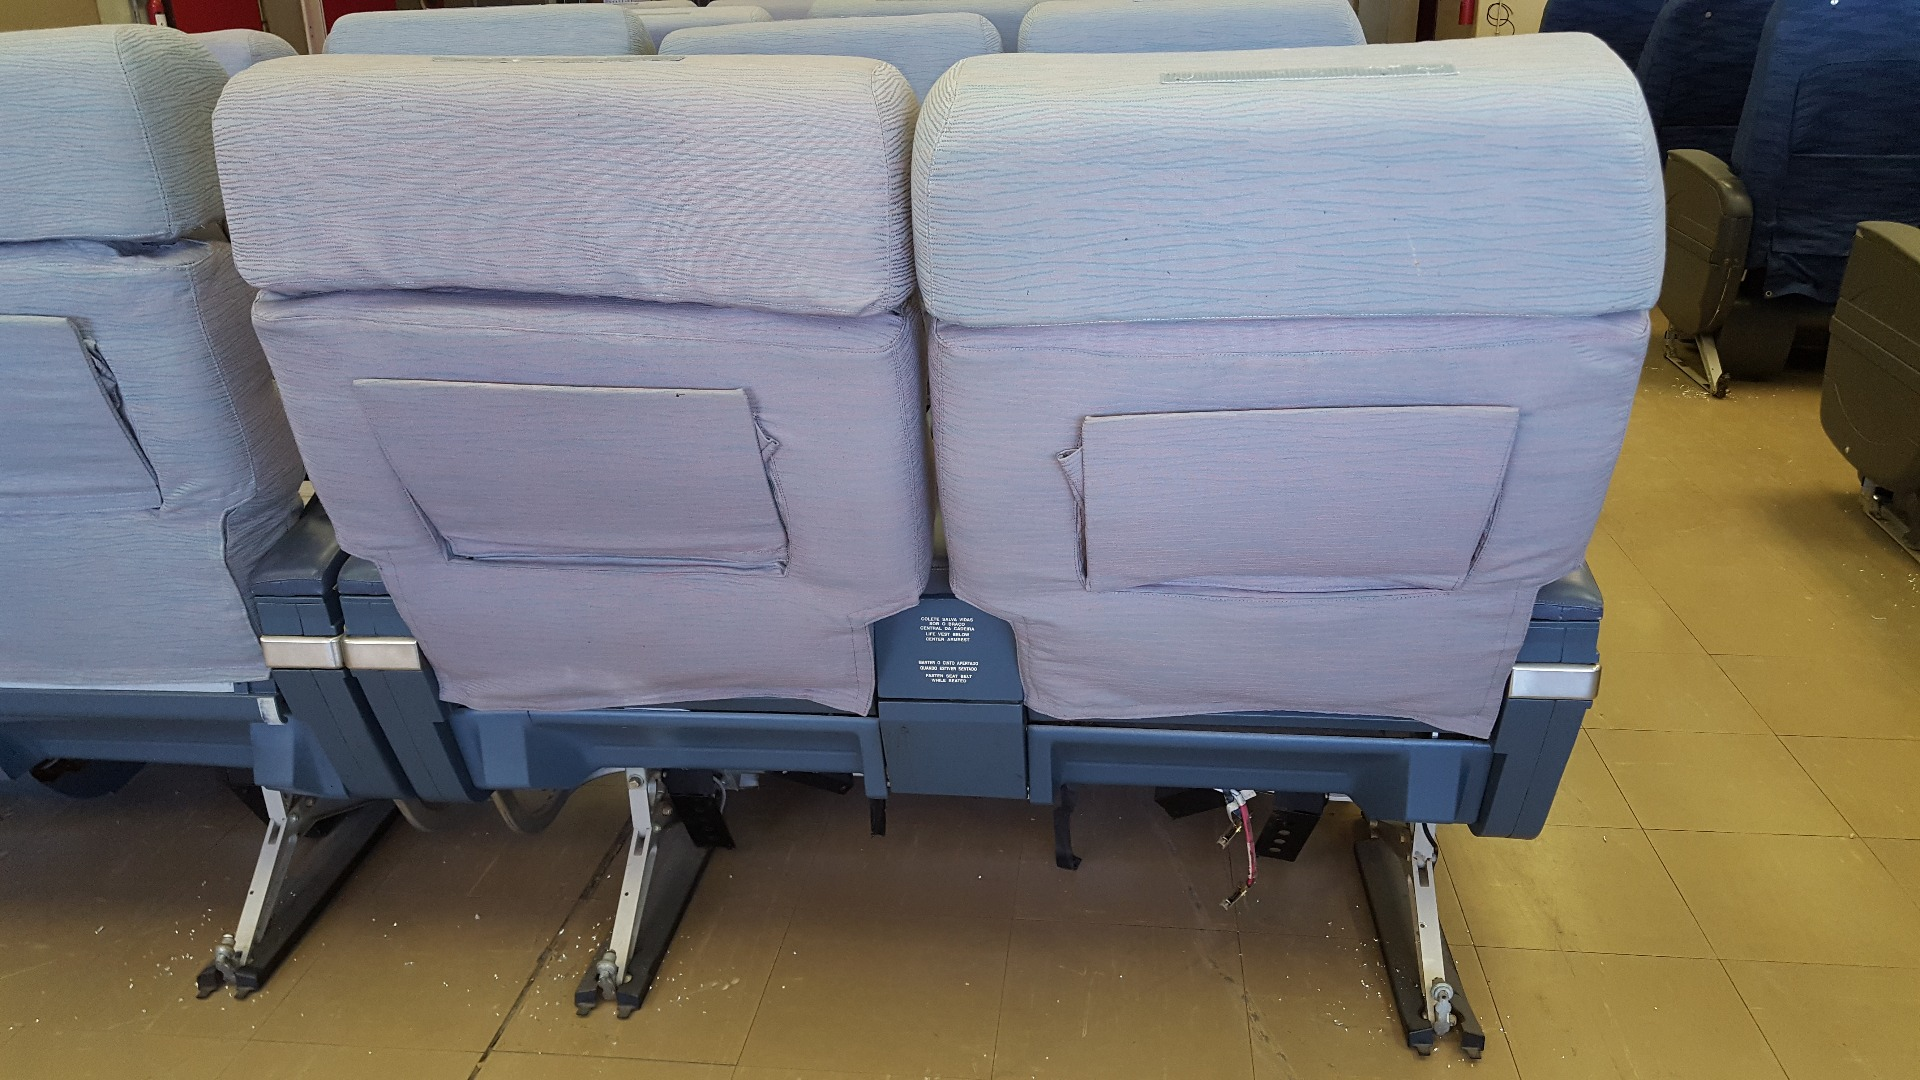 Executive double chair TAP A340 airplane | 16